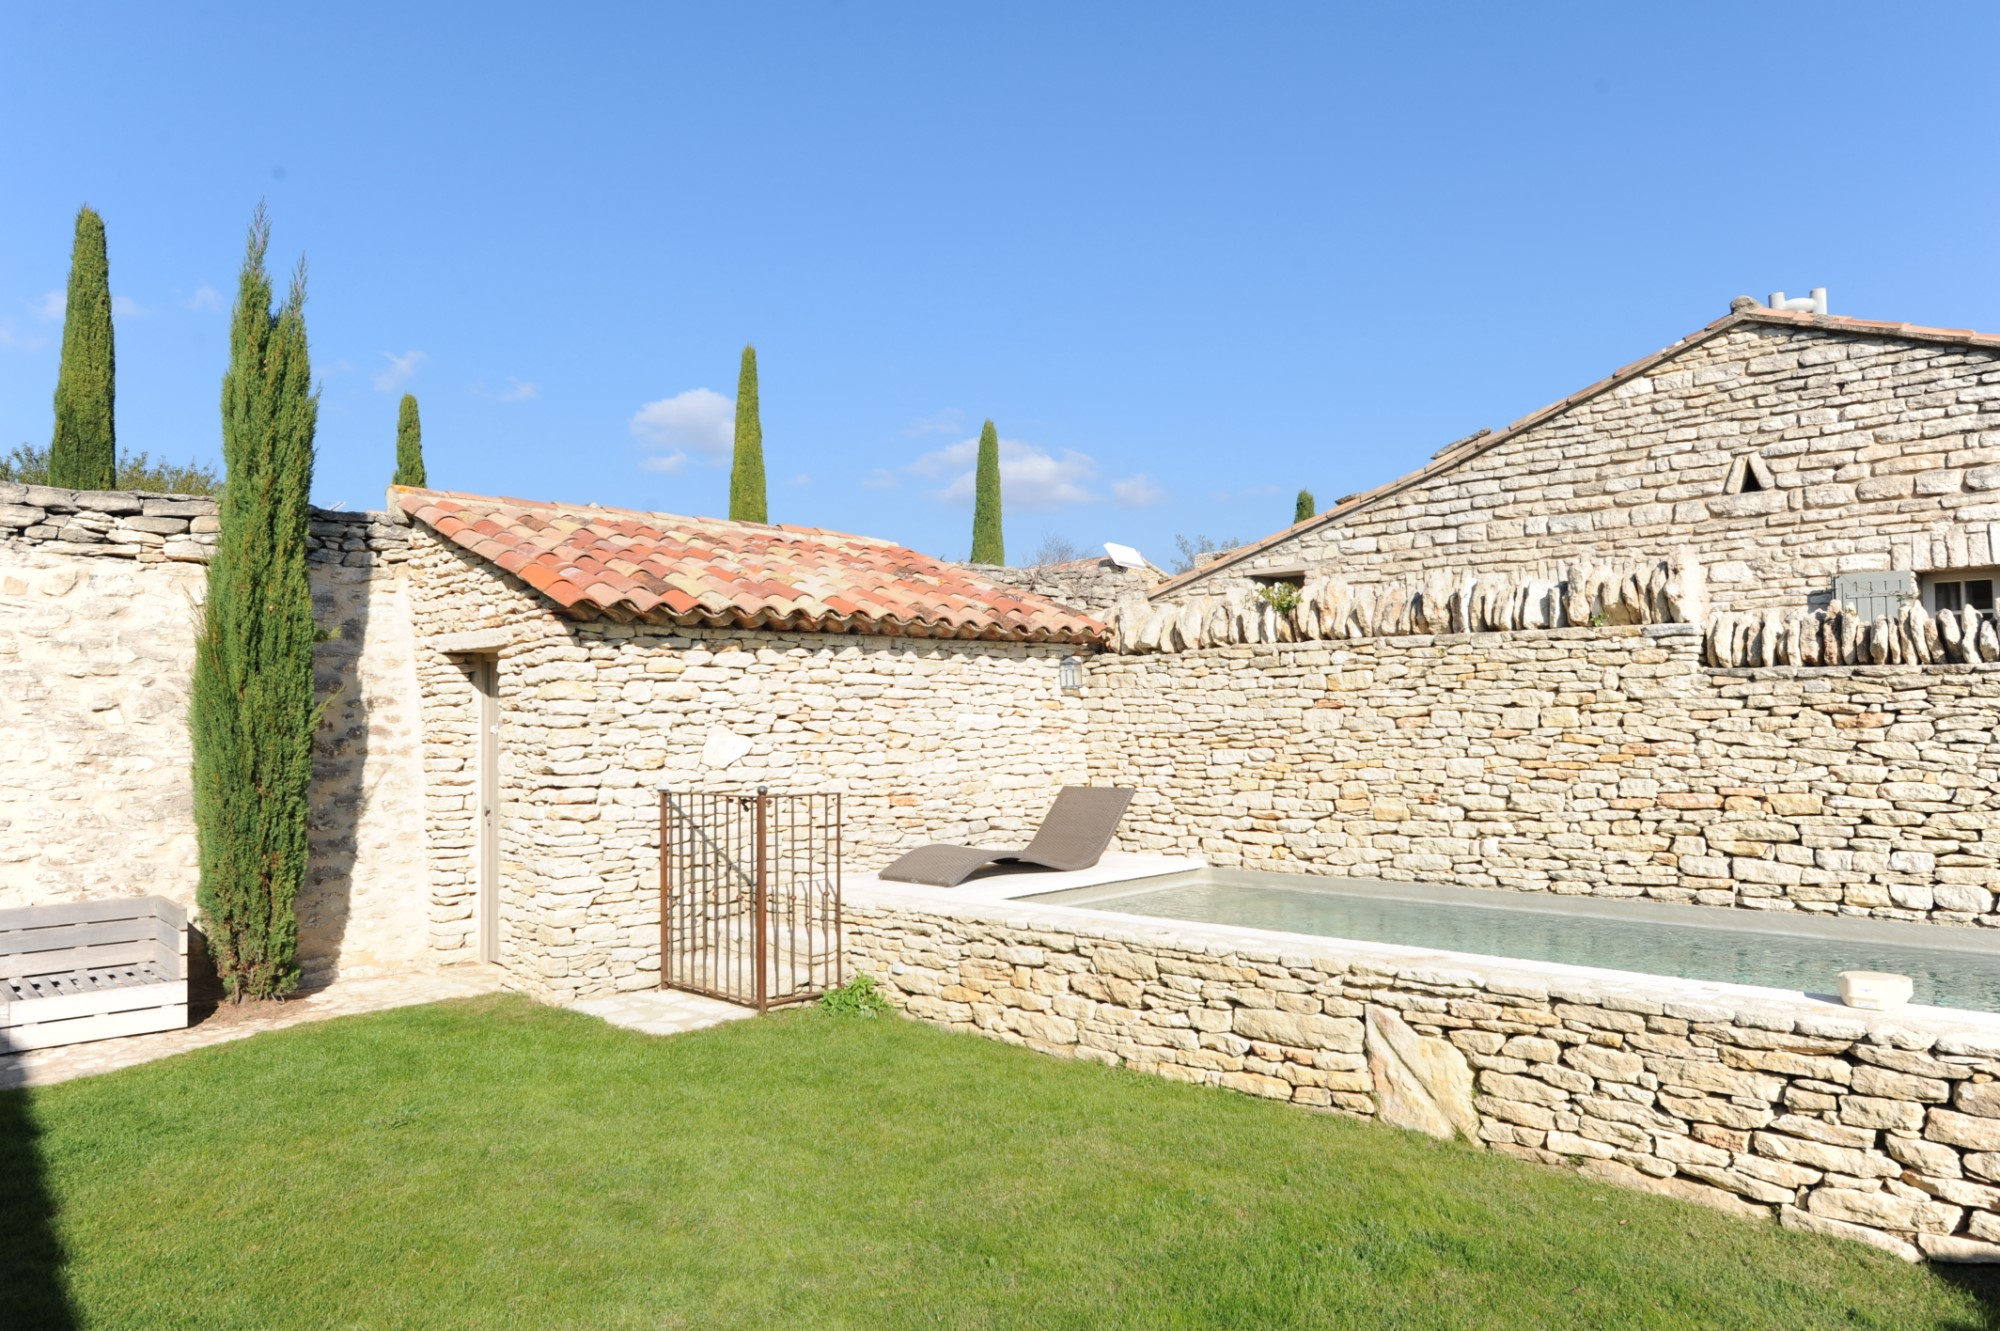 Ventes en luberon vendre maison de charme ave piscine for Photo de jardin de maison